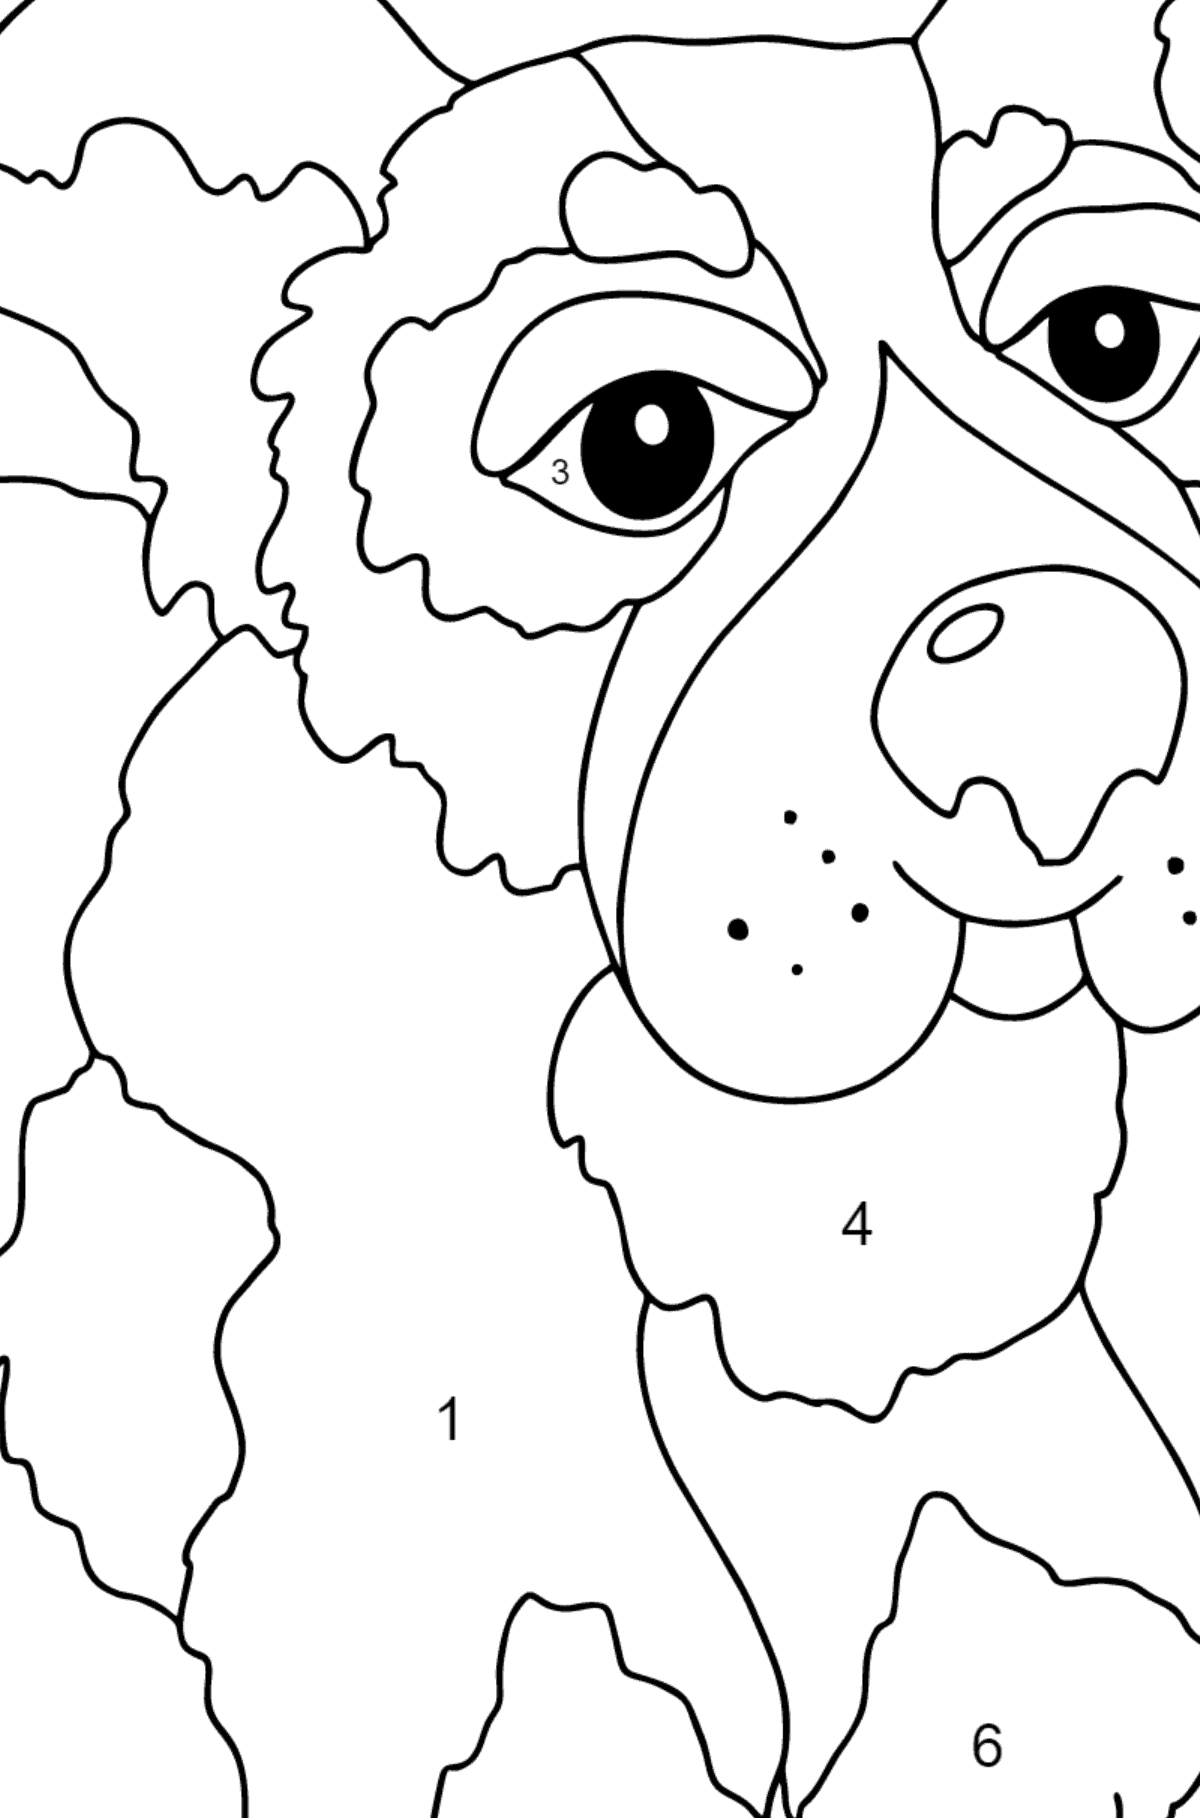 Coloring Page - A Dog is Jumping with a Blue Ball for Children  - Color by Number